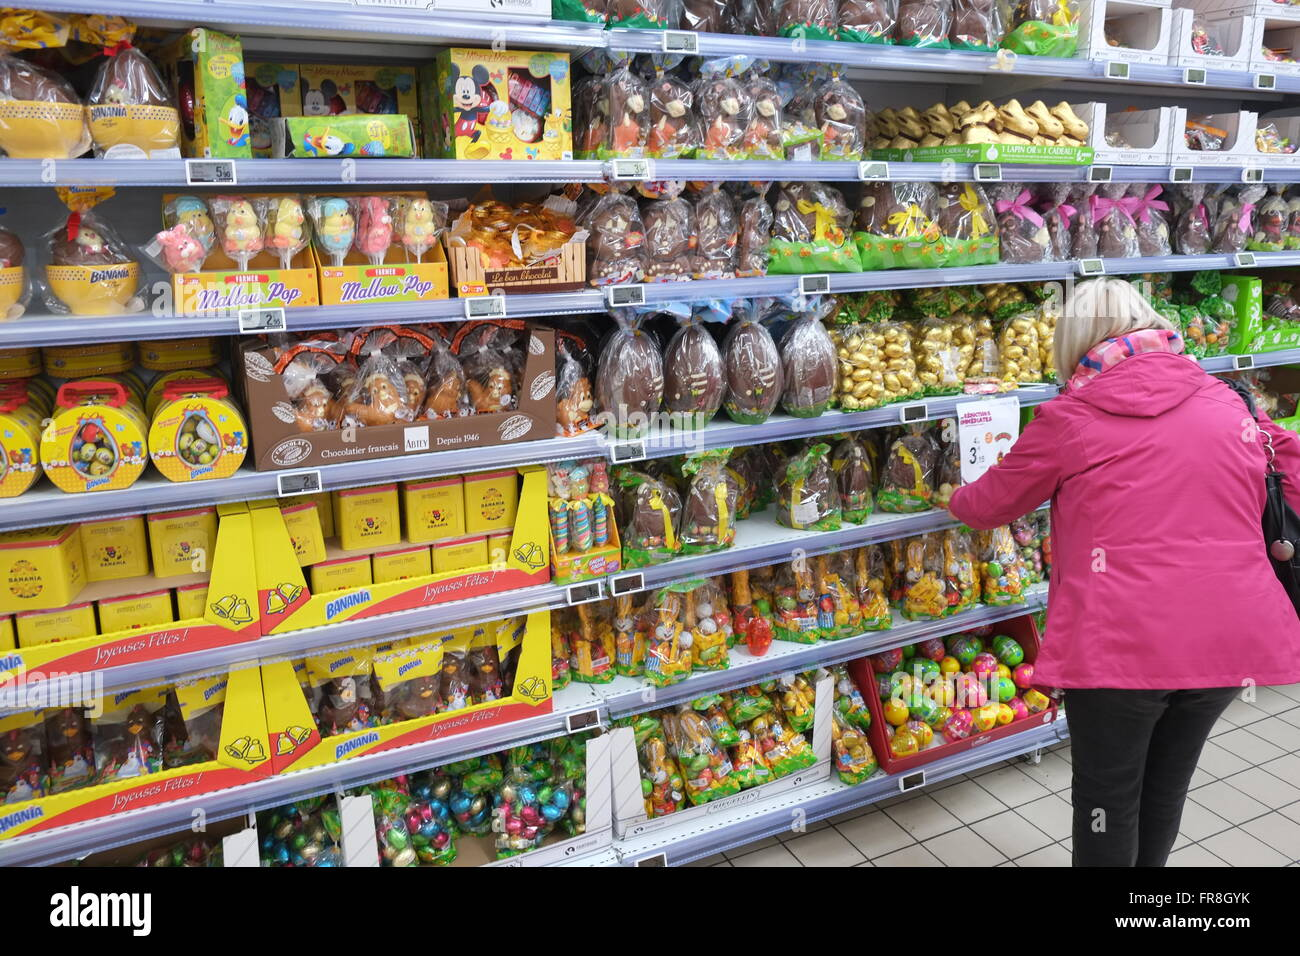 Lindt chocolate bunnies,rabbits an Easter promotion at E.Leclerc ...